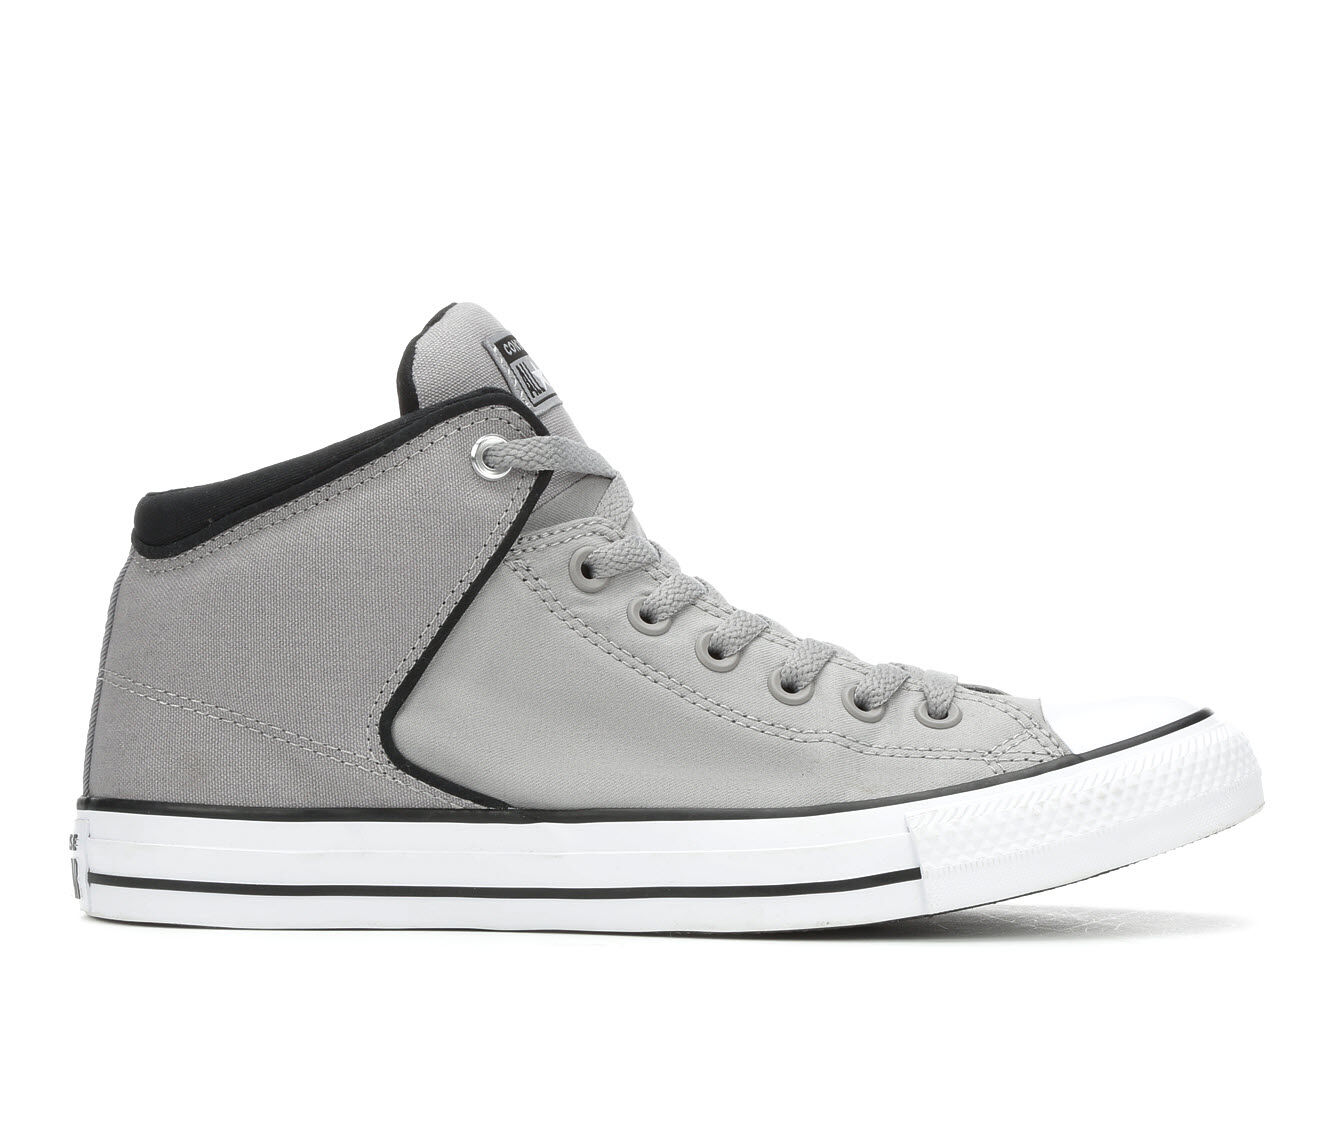 Men's Converse CTAS High Street Hi Shadow Sneakers Gry/Blk/Wht